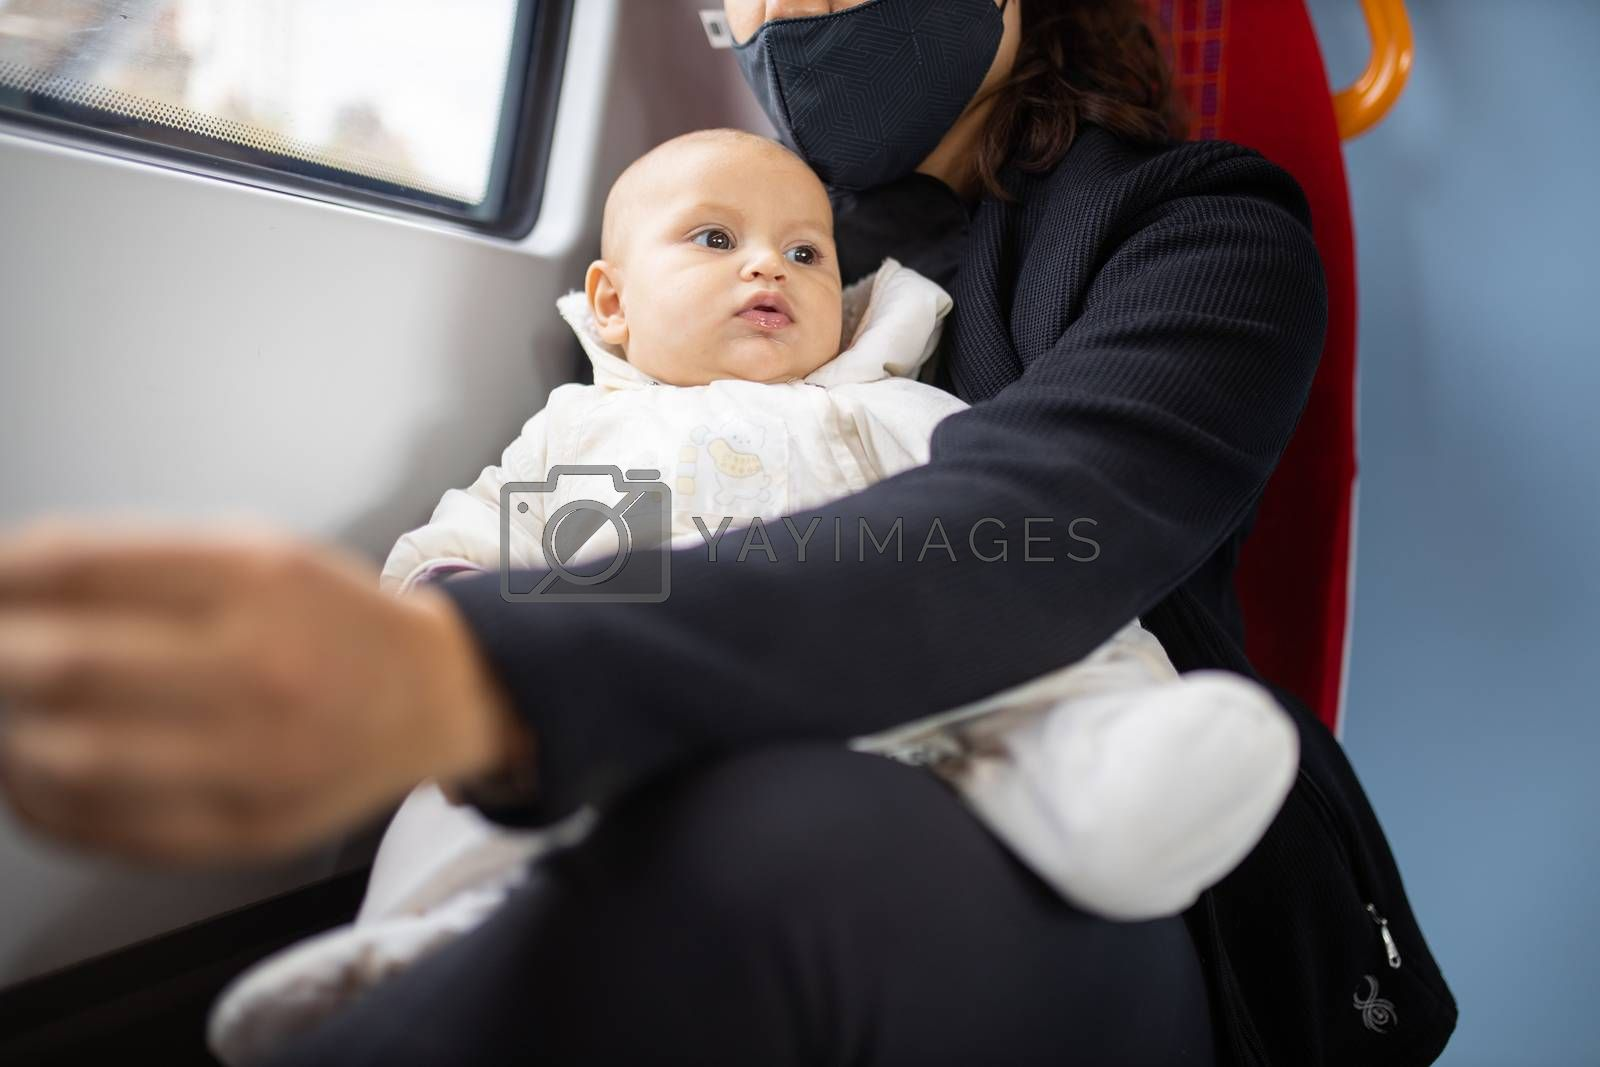 Distracted-looking baby in white clothing resting on the legs of her mother who wears a face mask and sits next to a window